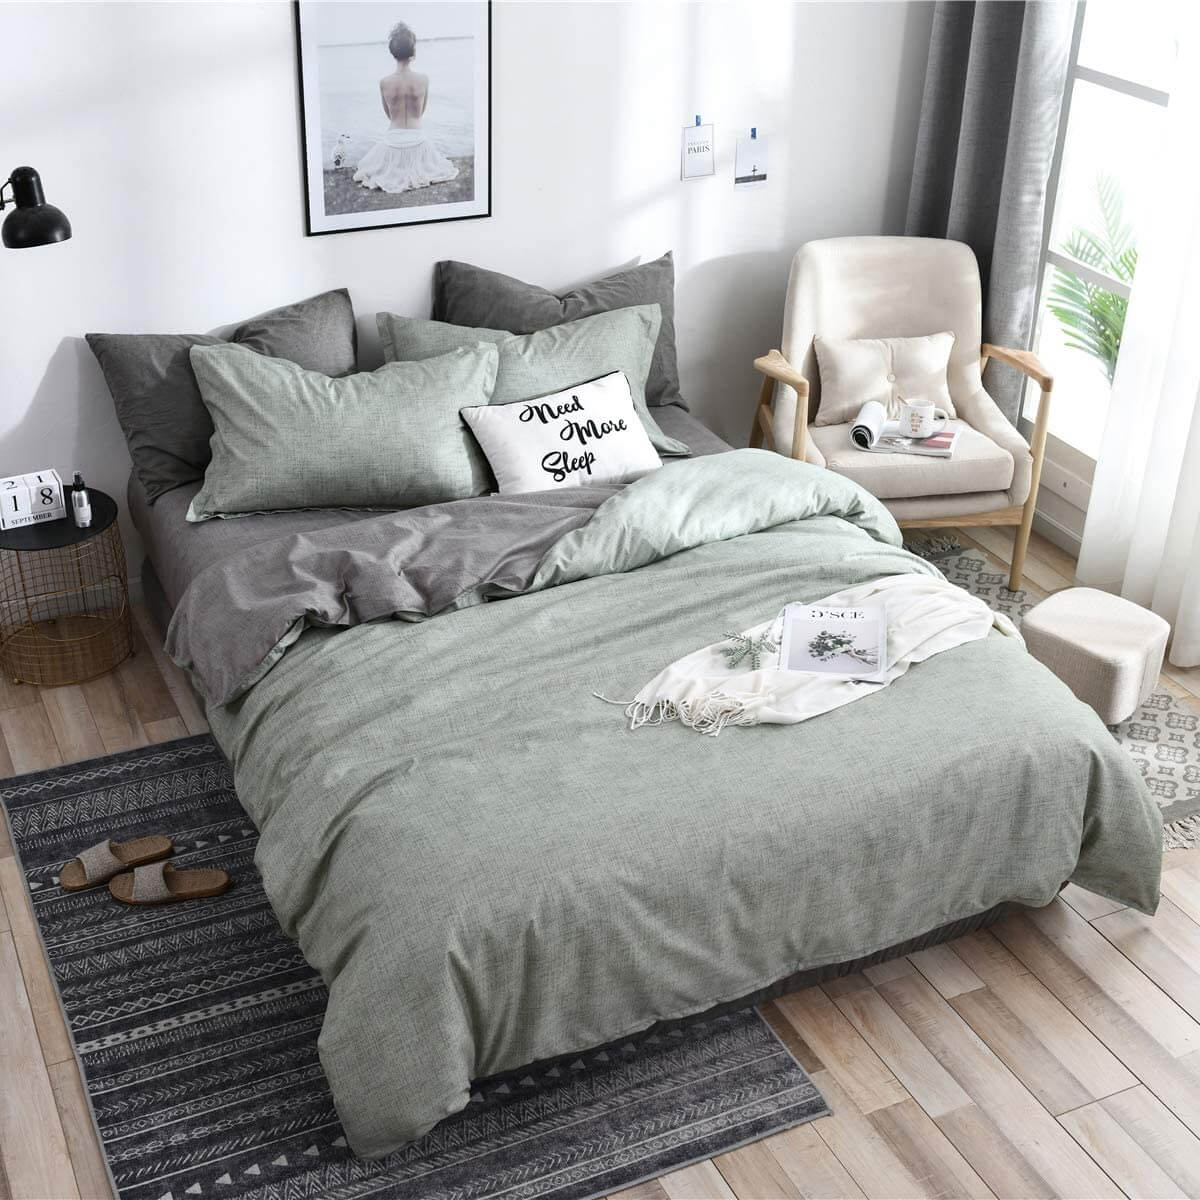 More Sleep in This Grey Green Space